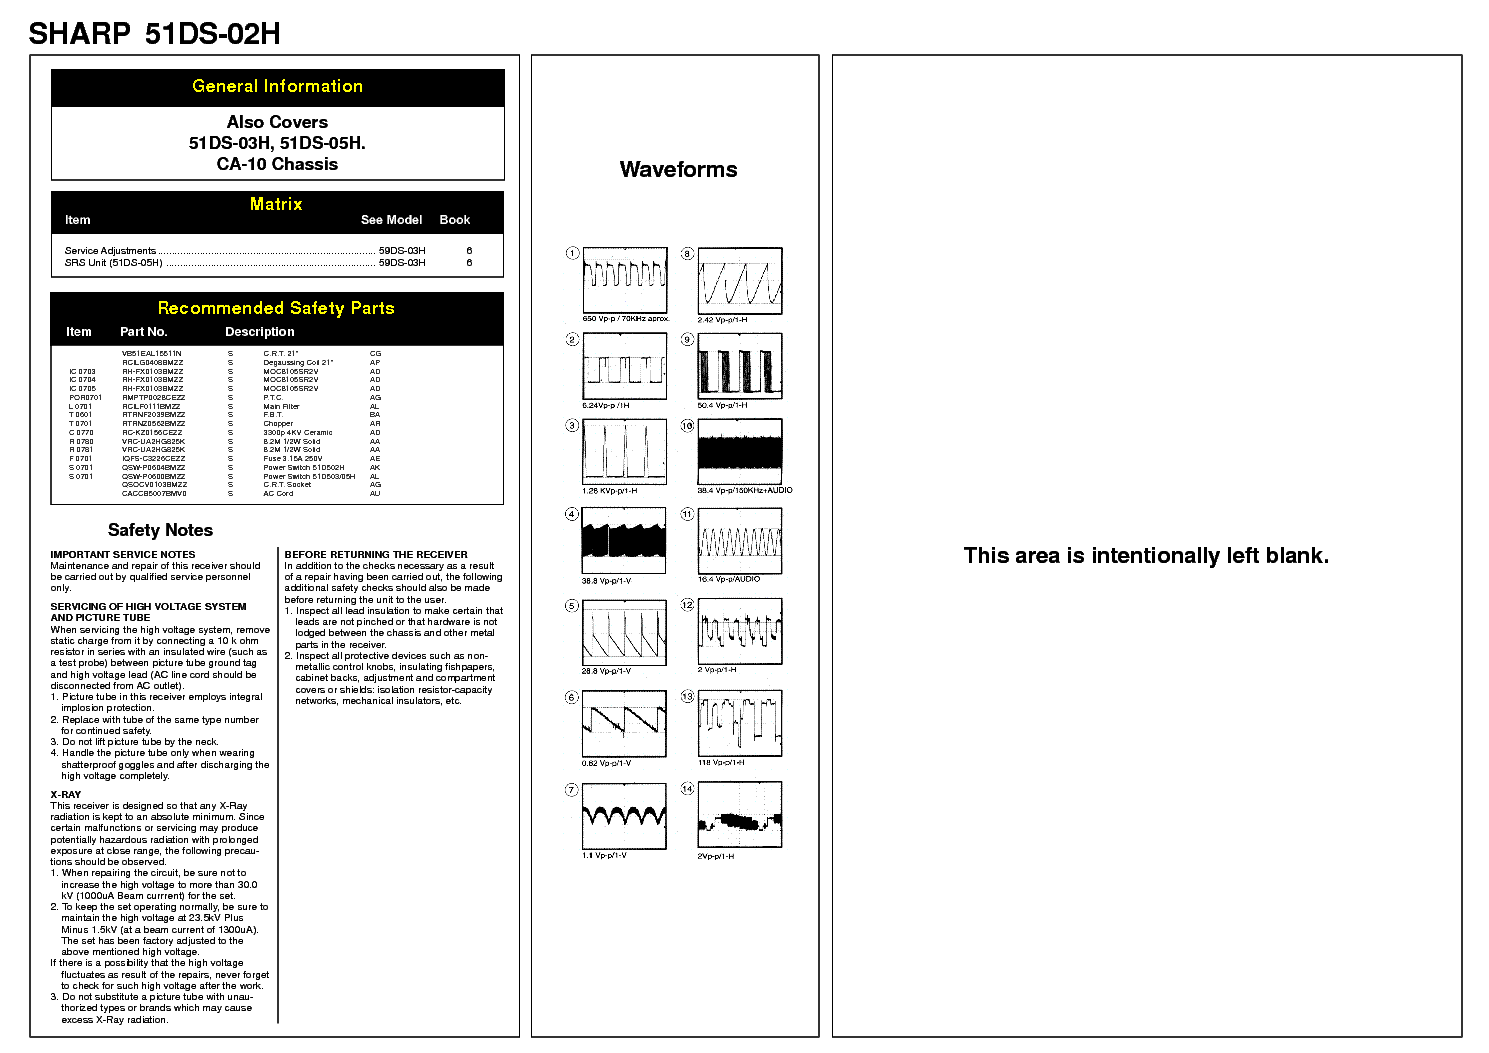 SHARP 51DS02H CHASSIS CA-10 service manual (1st page)